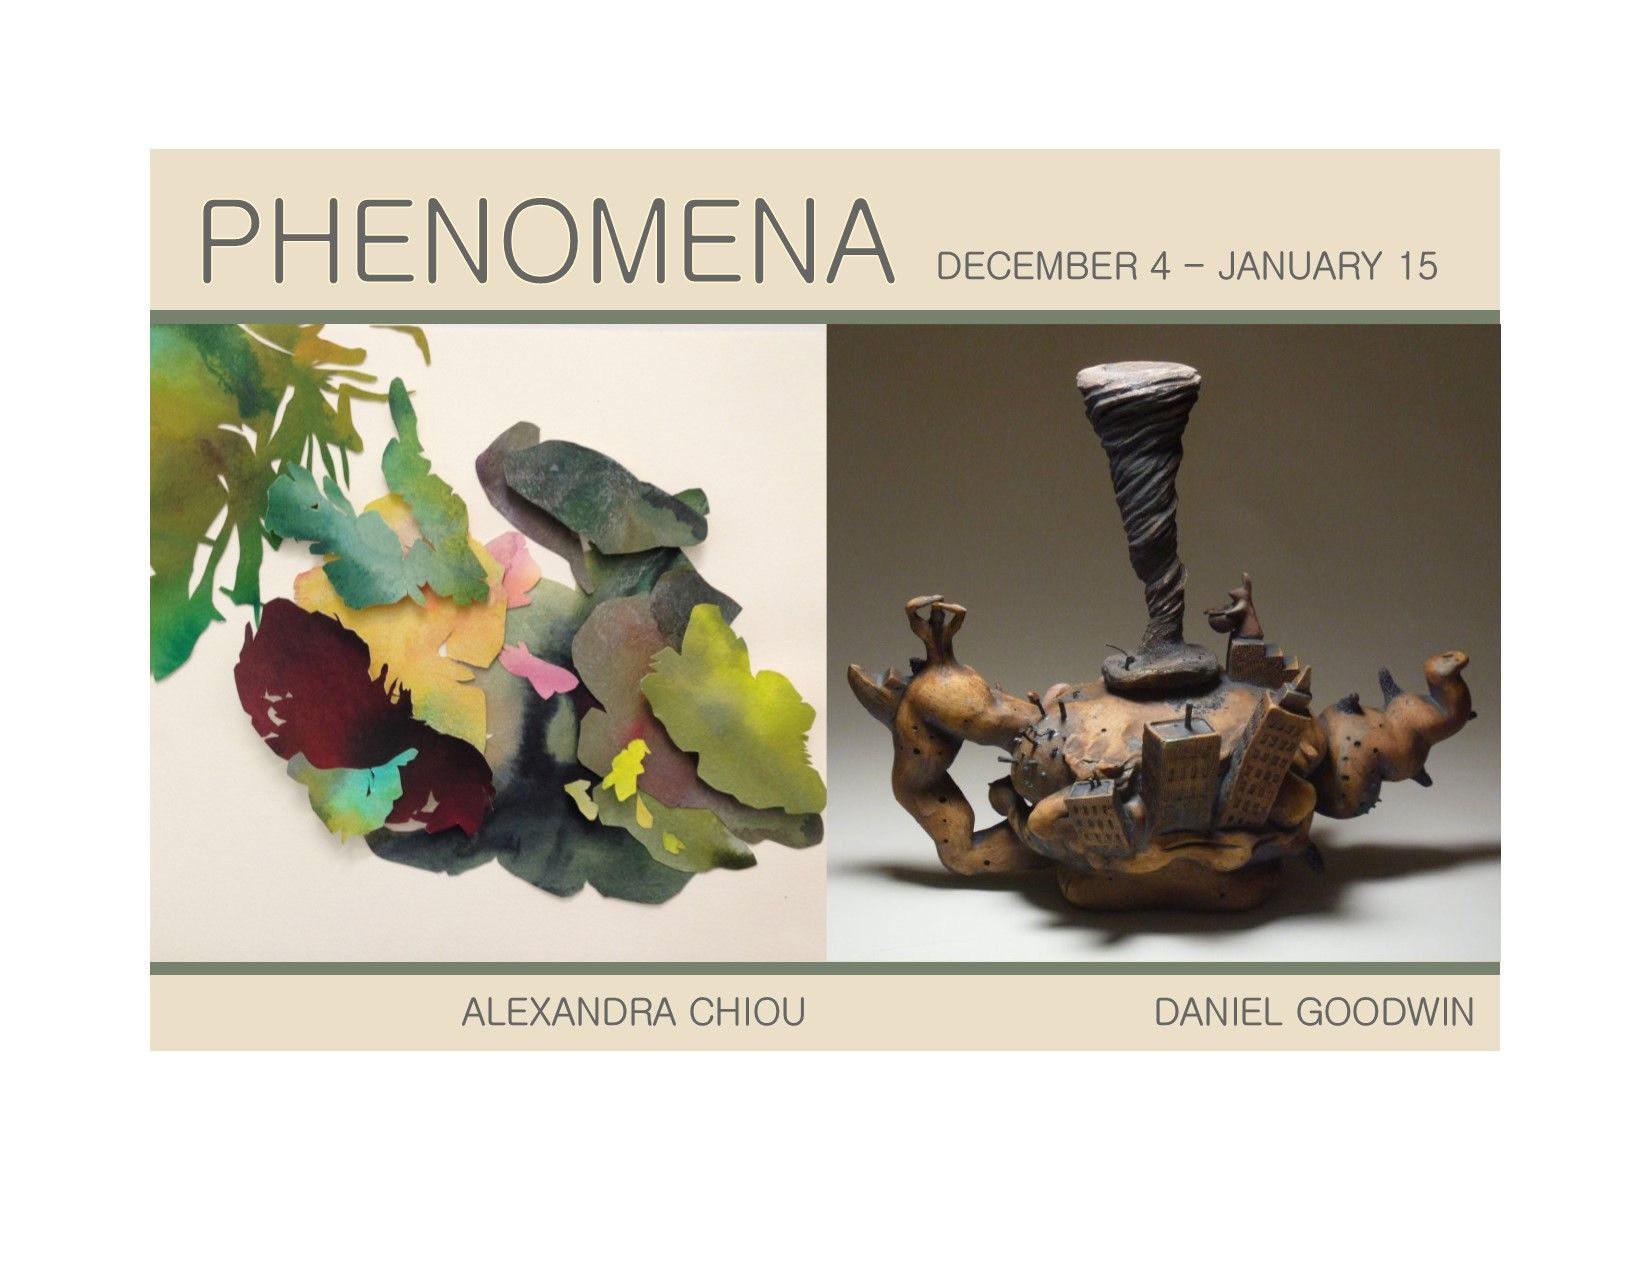 PHENOMENA - Alexandra graduated from UVA & double majored in Studio Art & Commerce. Her work has been exhibited at the American University Art Museum, artdc Gallery & Hillyer Art Space. She completed a Residence at the Strathmore in Bethesda, MD. Daniel received his Bachelors/Fine Arts from Alfred University & his Masters/Fine Arts from Norfolk State. Daniel creates surreal landscapes in ceramic.  His work has been exhibited at  galleries & museums to include Tokyo Metropolitan Museum.